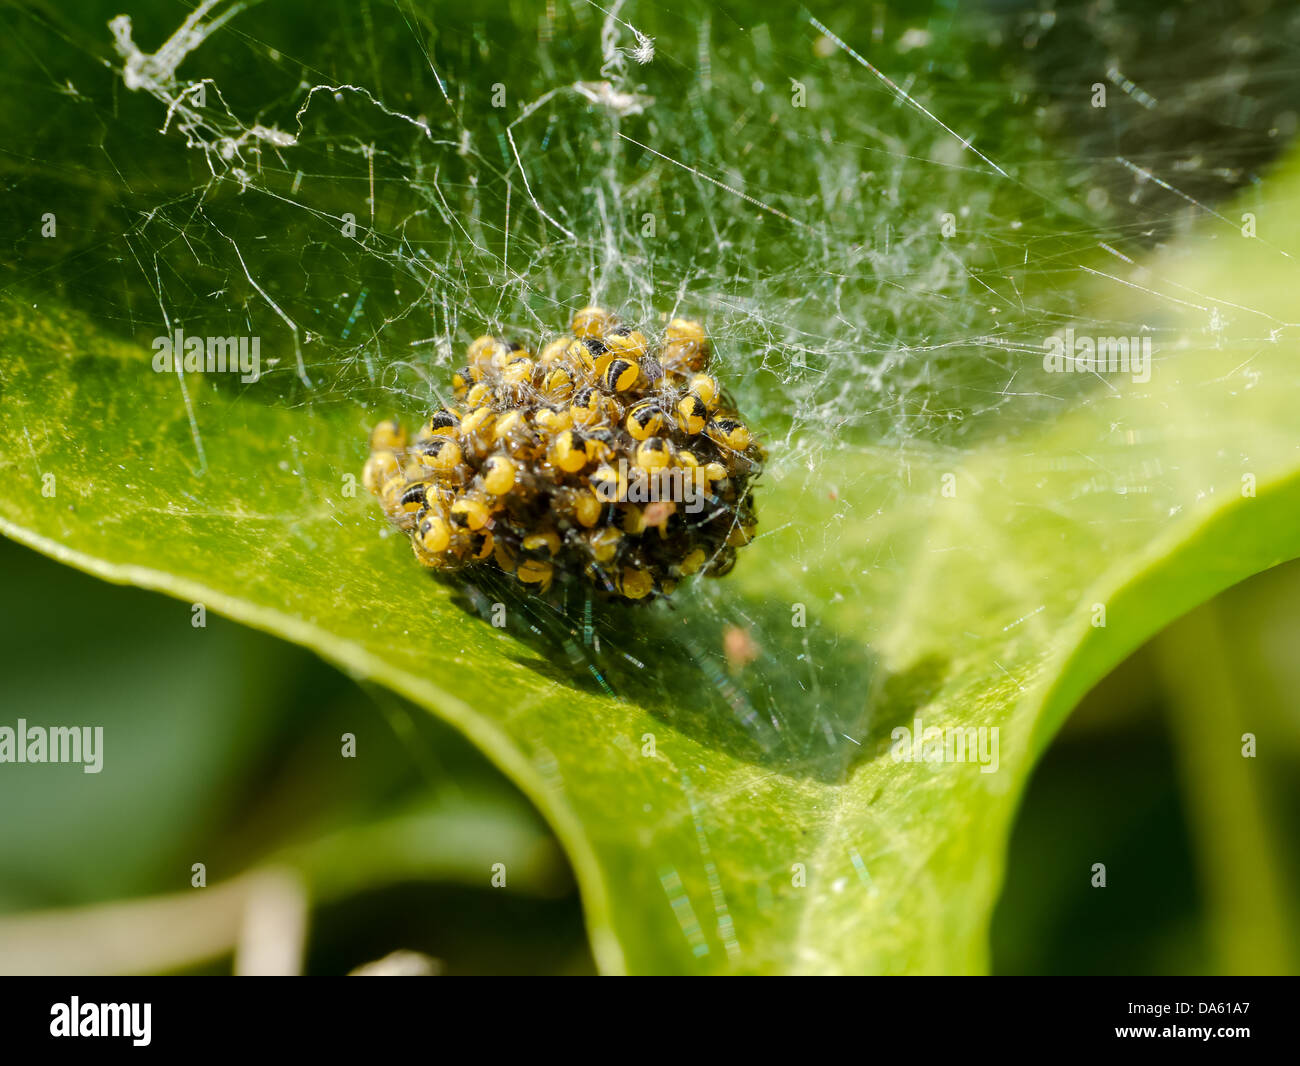 a-nest-of-baby-garden-spiderlings-on-a-l